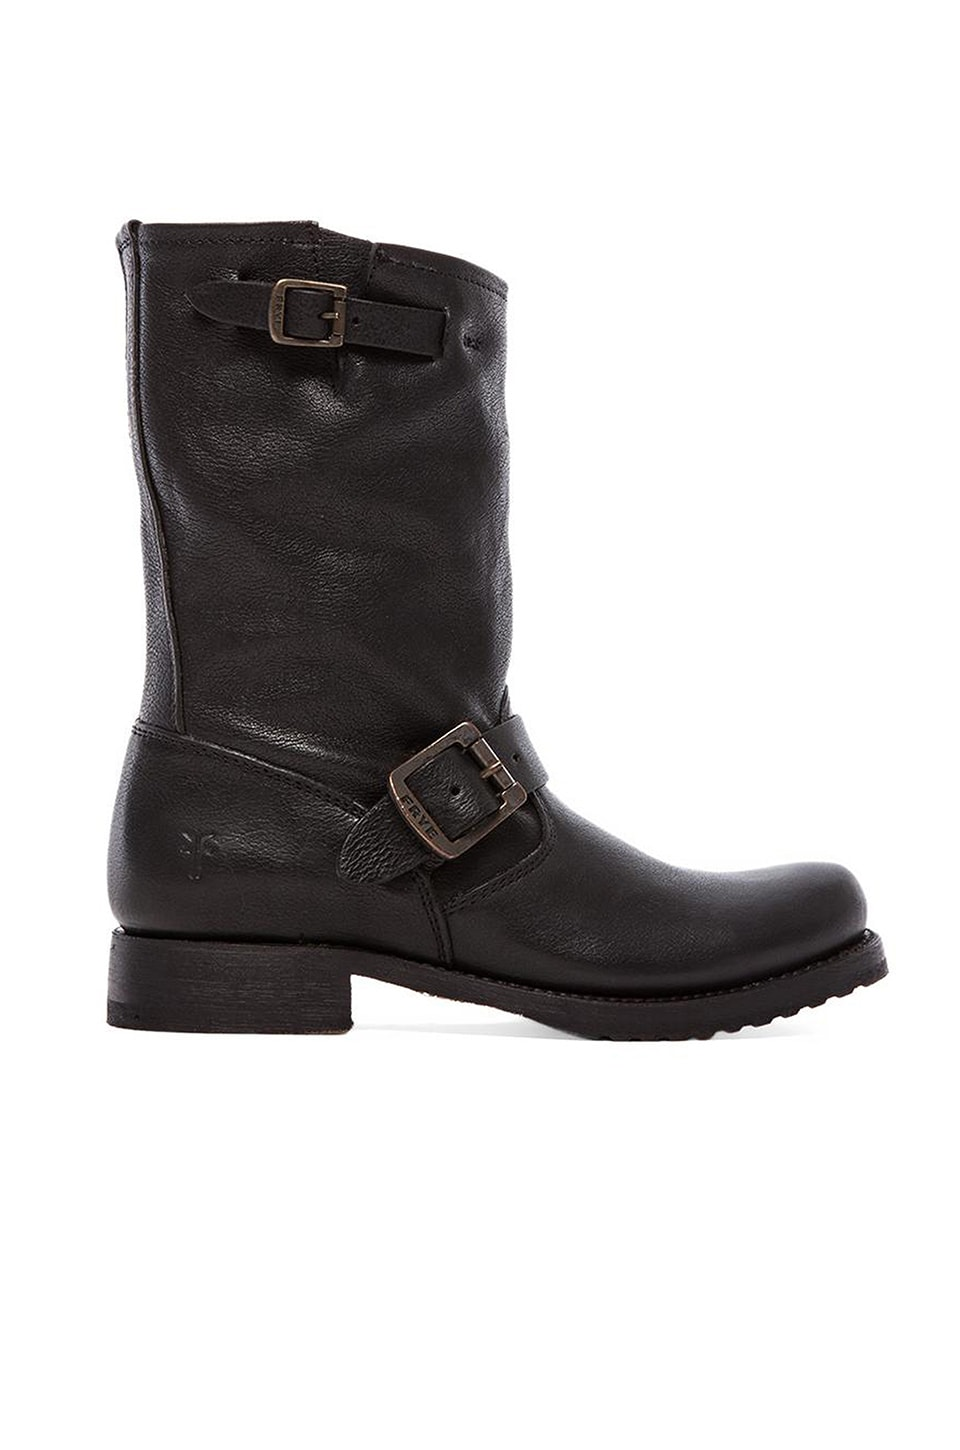 Frye Veronica Shortie in Black